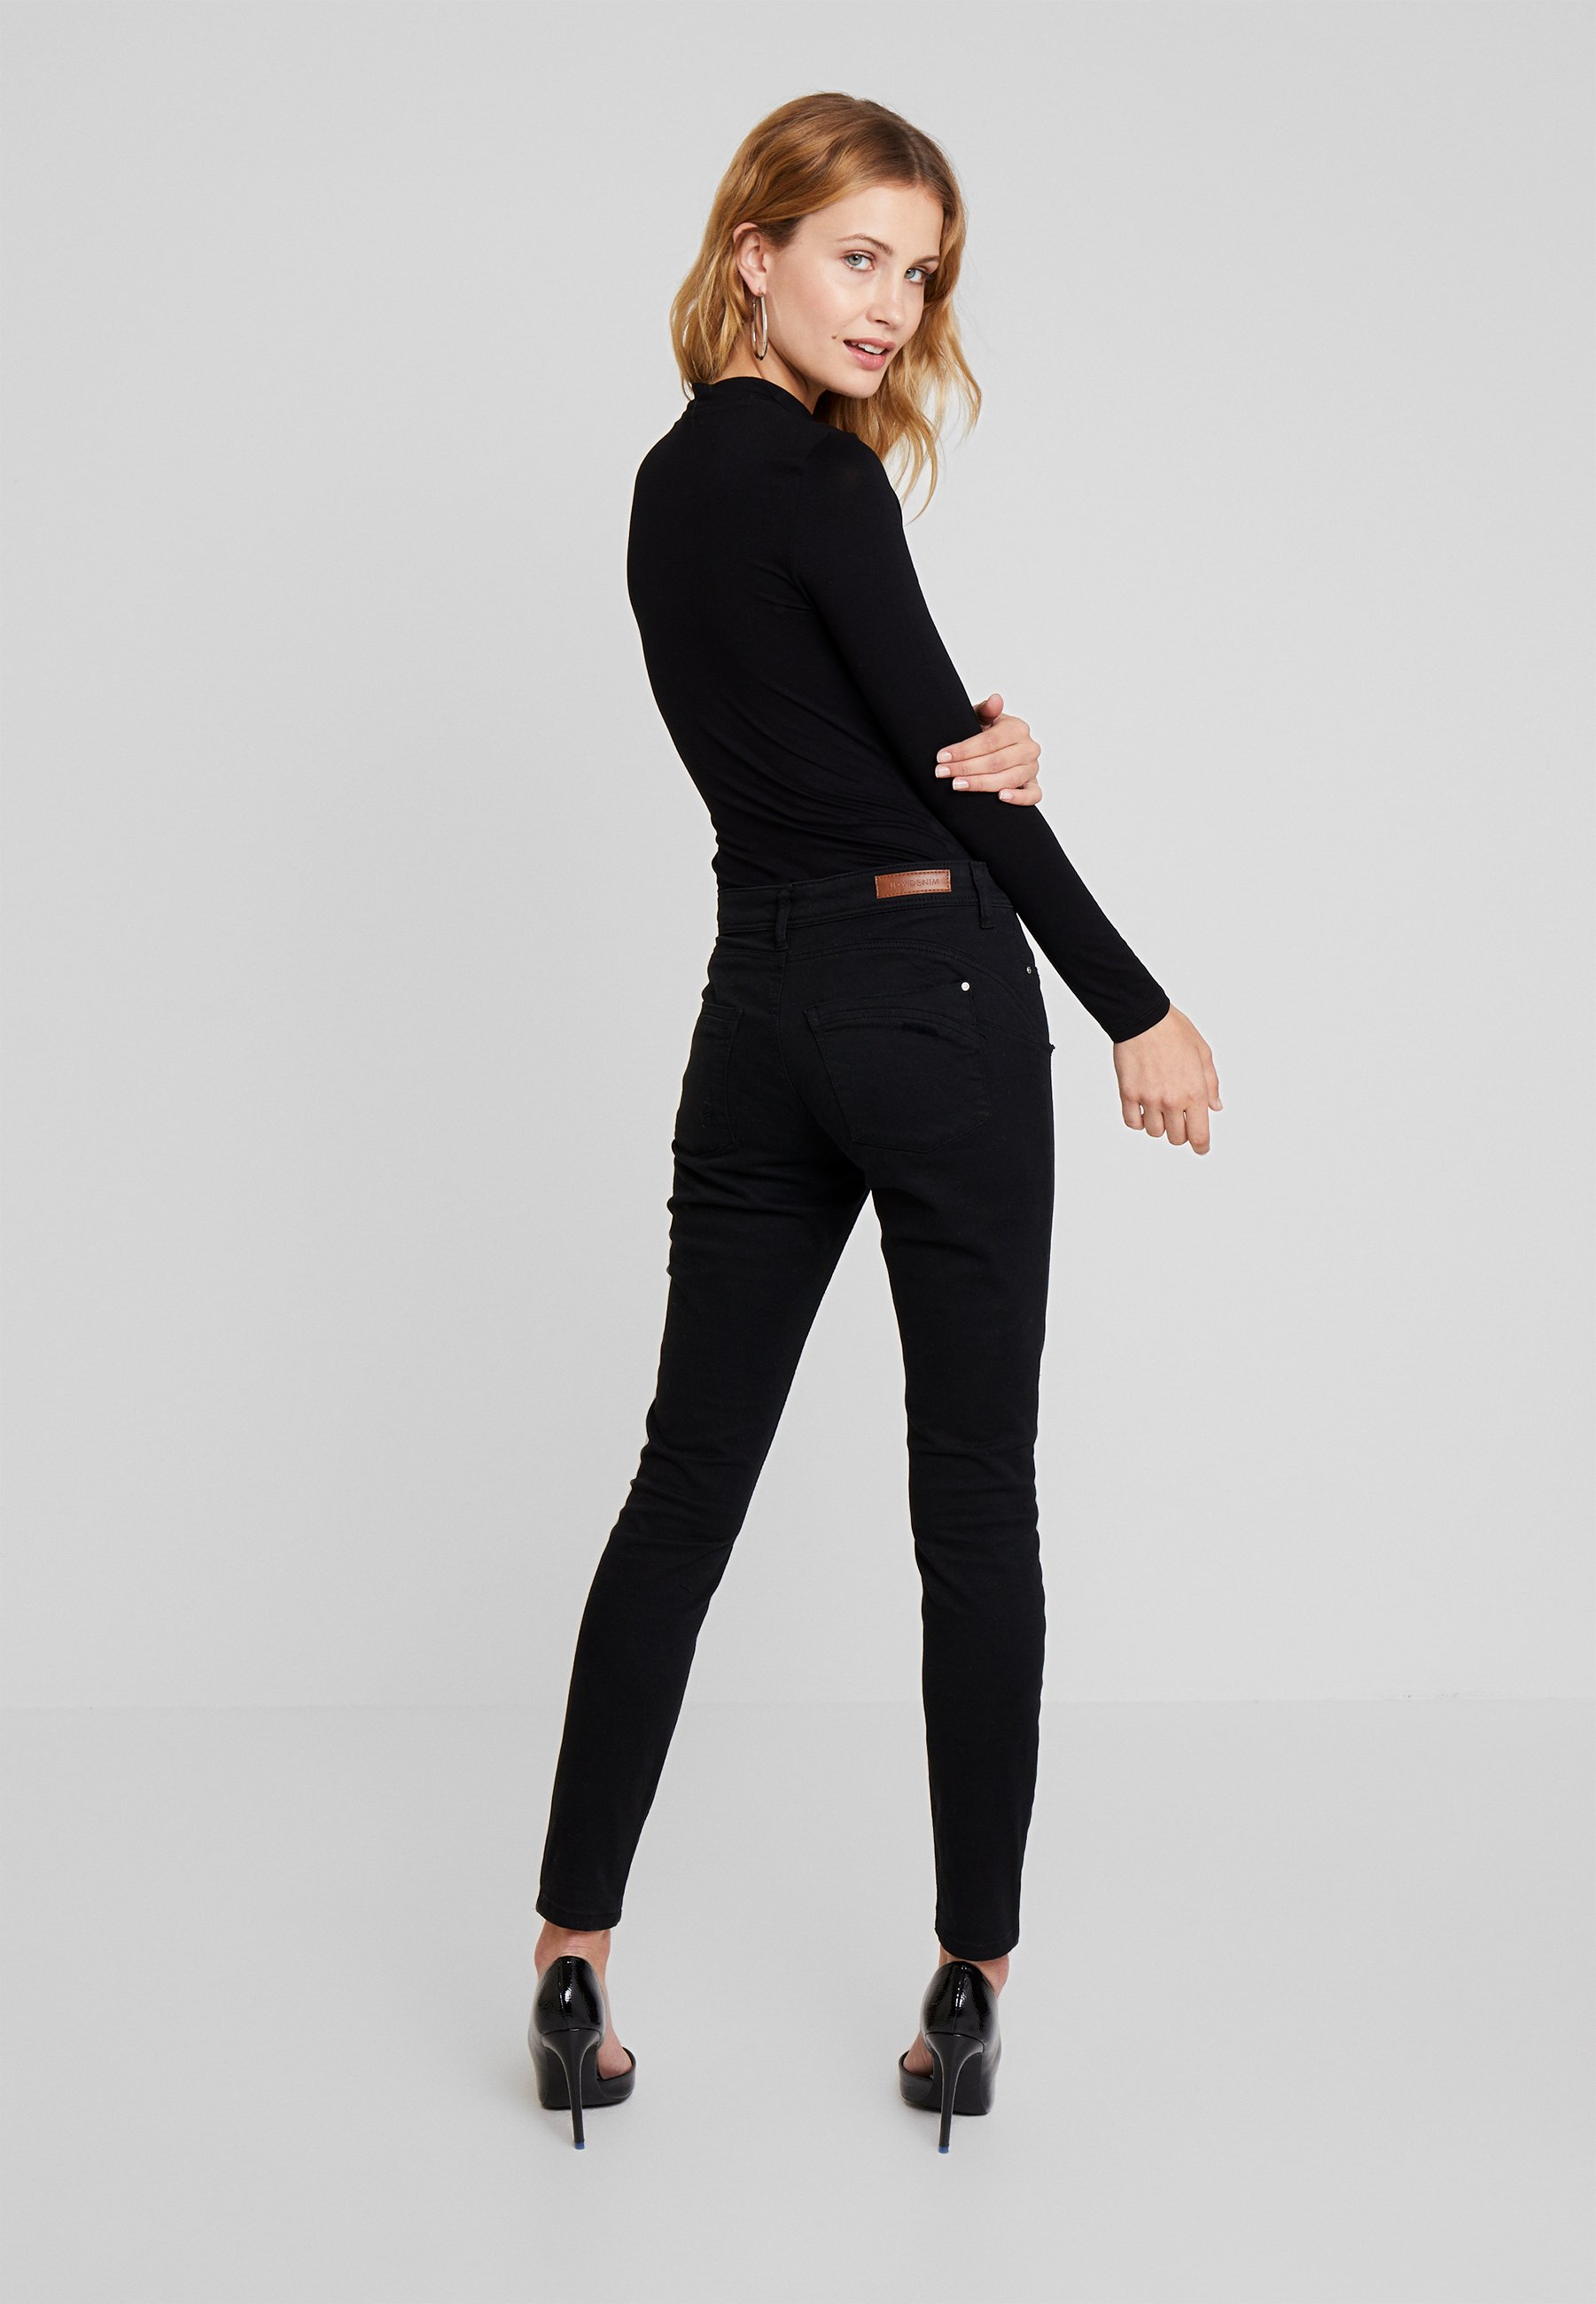 Longues À BodyT Triangle Black Leo Guess shirt Manches Jet HWE29ID